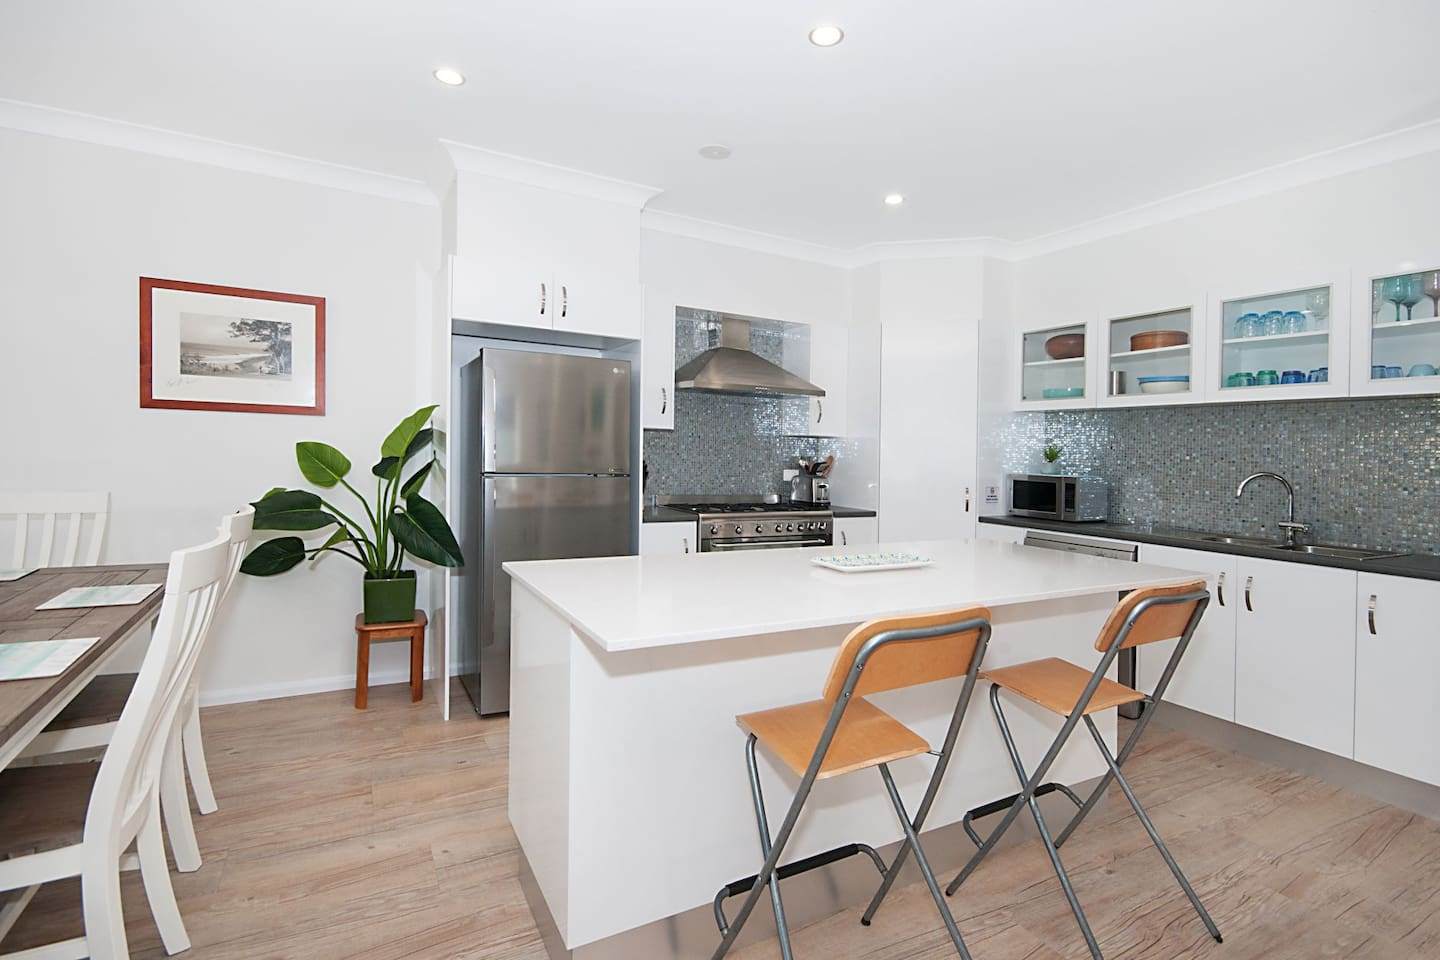 Kitchen. Oversize gas stove, SS appliances, stone bench top glass tiles. Fully equipped!